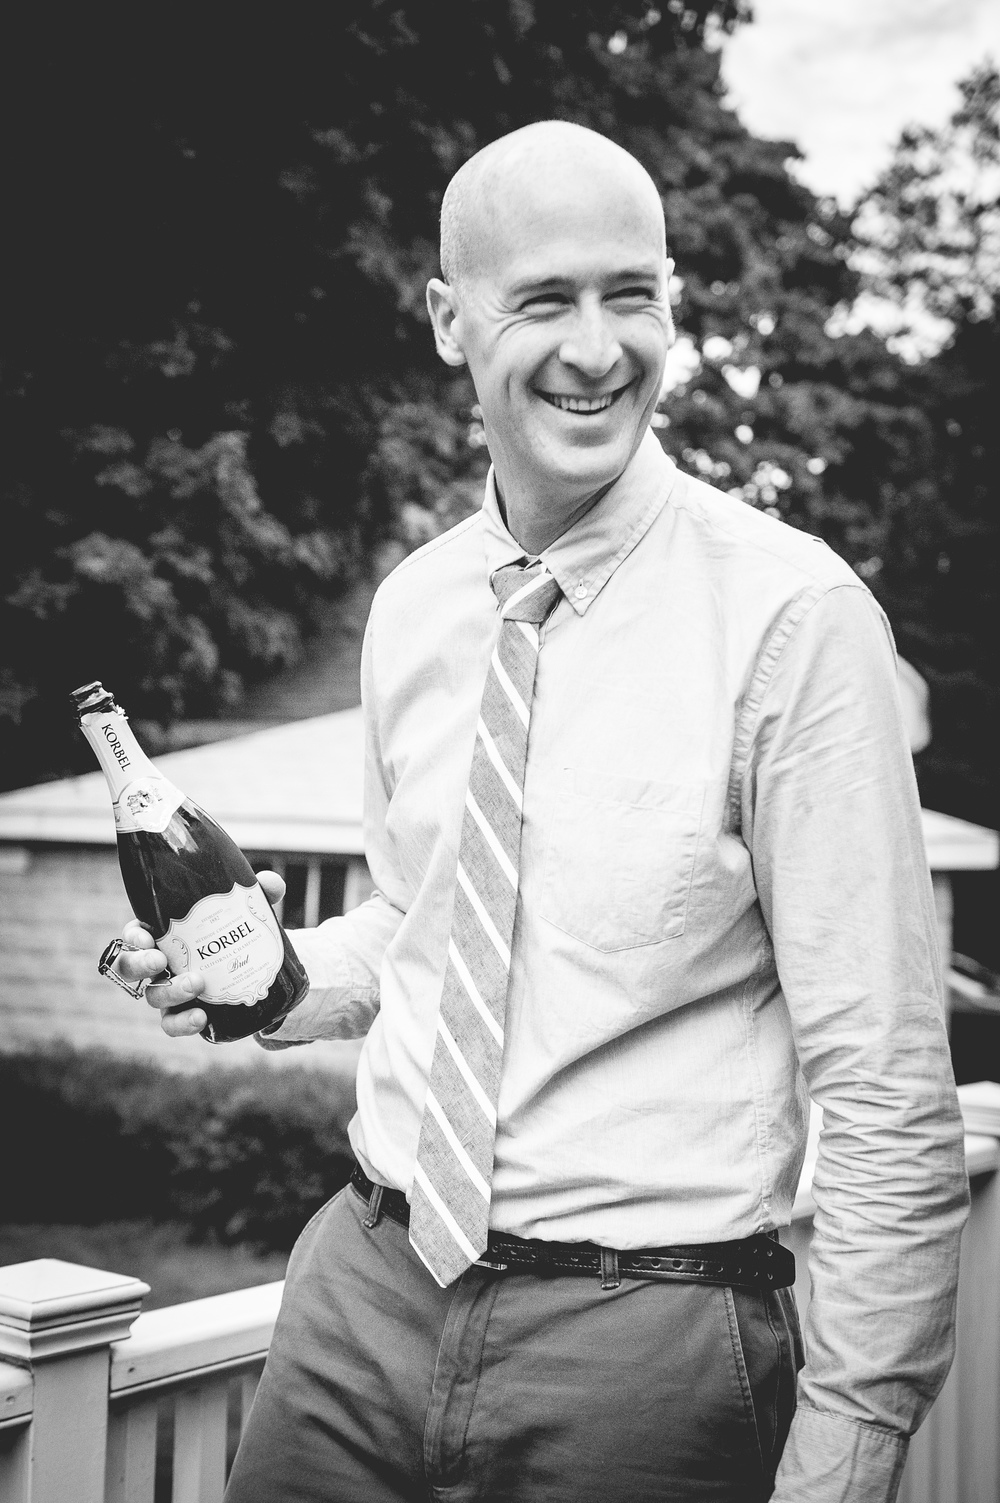 Groom popping the champagne backyard wedding celebration photographer Northshore MA